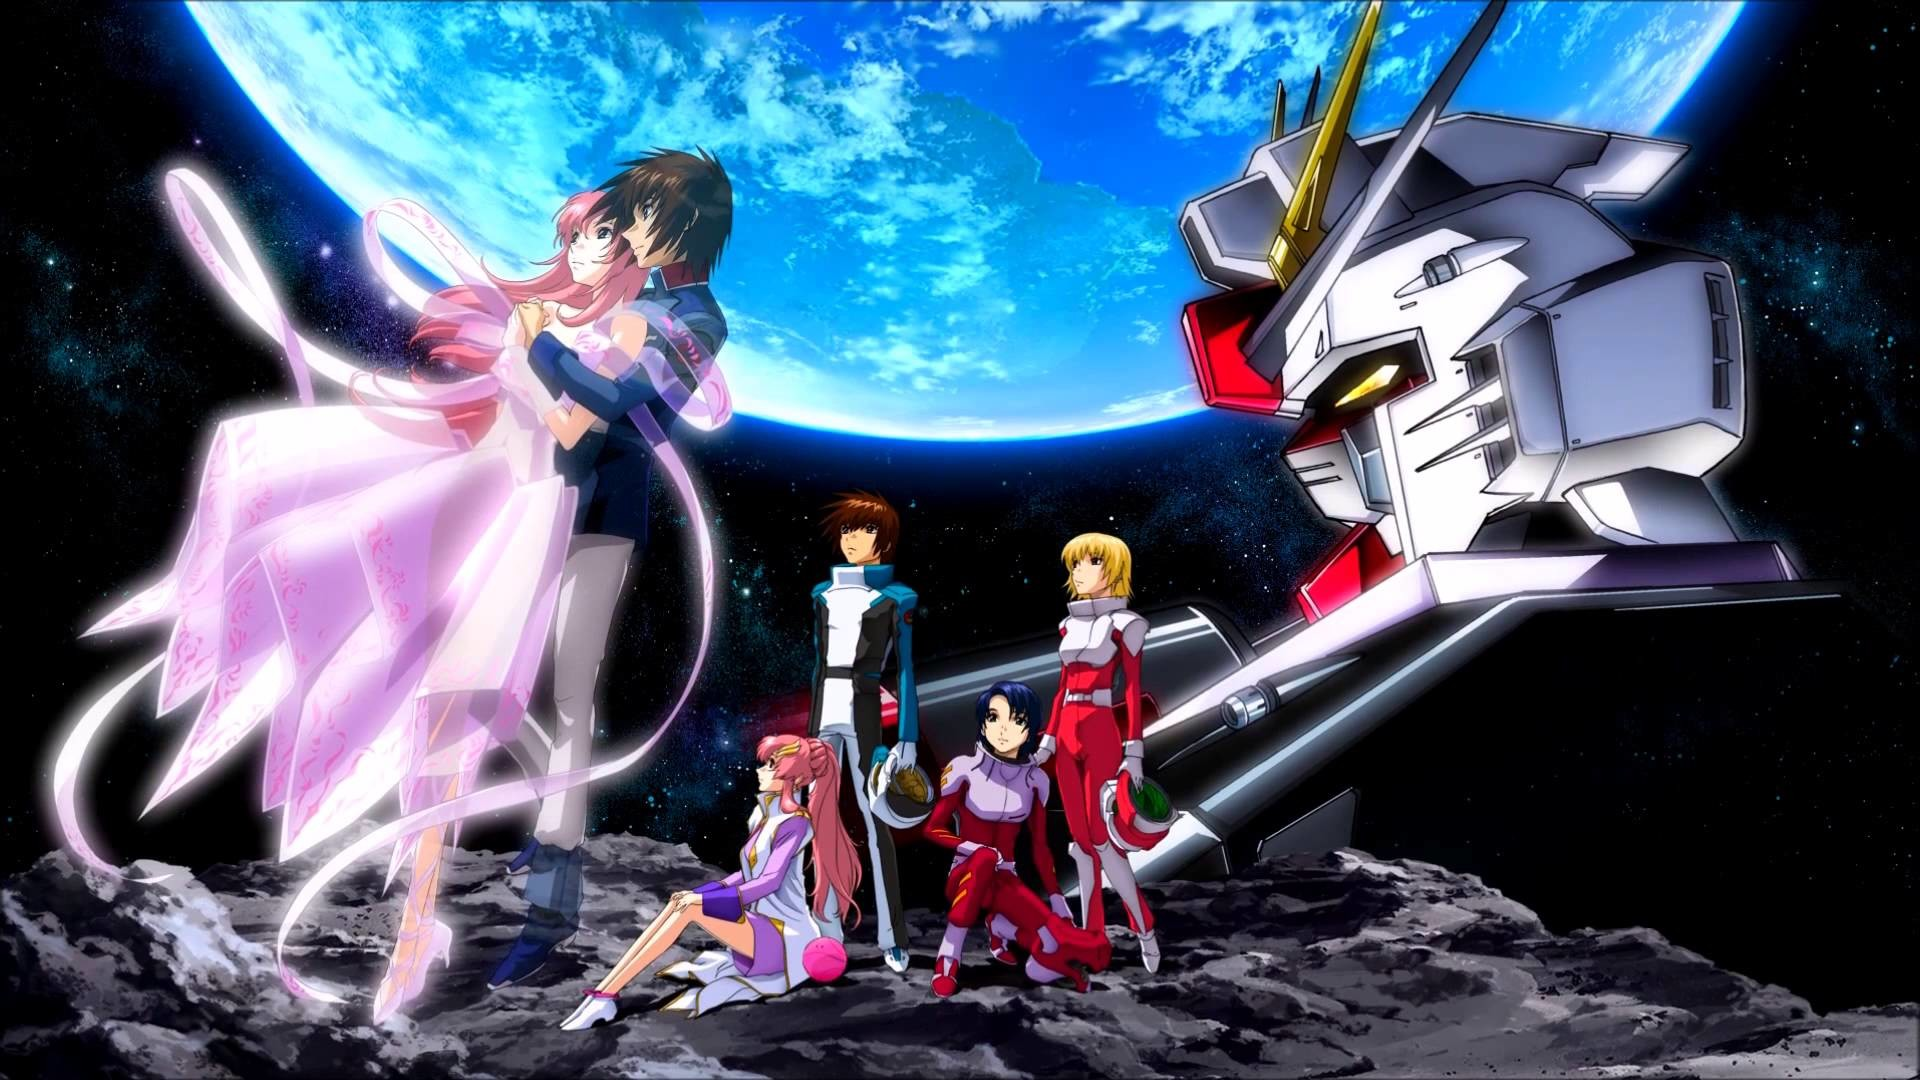 1920x1080 1080p] Result Gundam SEED Destiny HD Remaster Special Ending 1